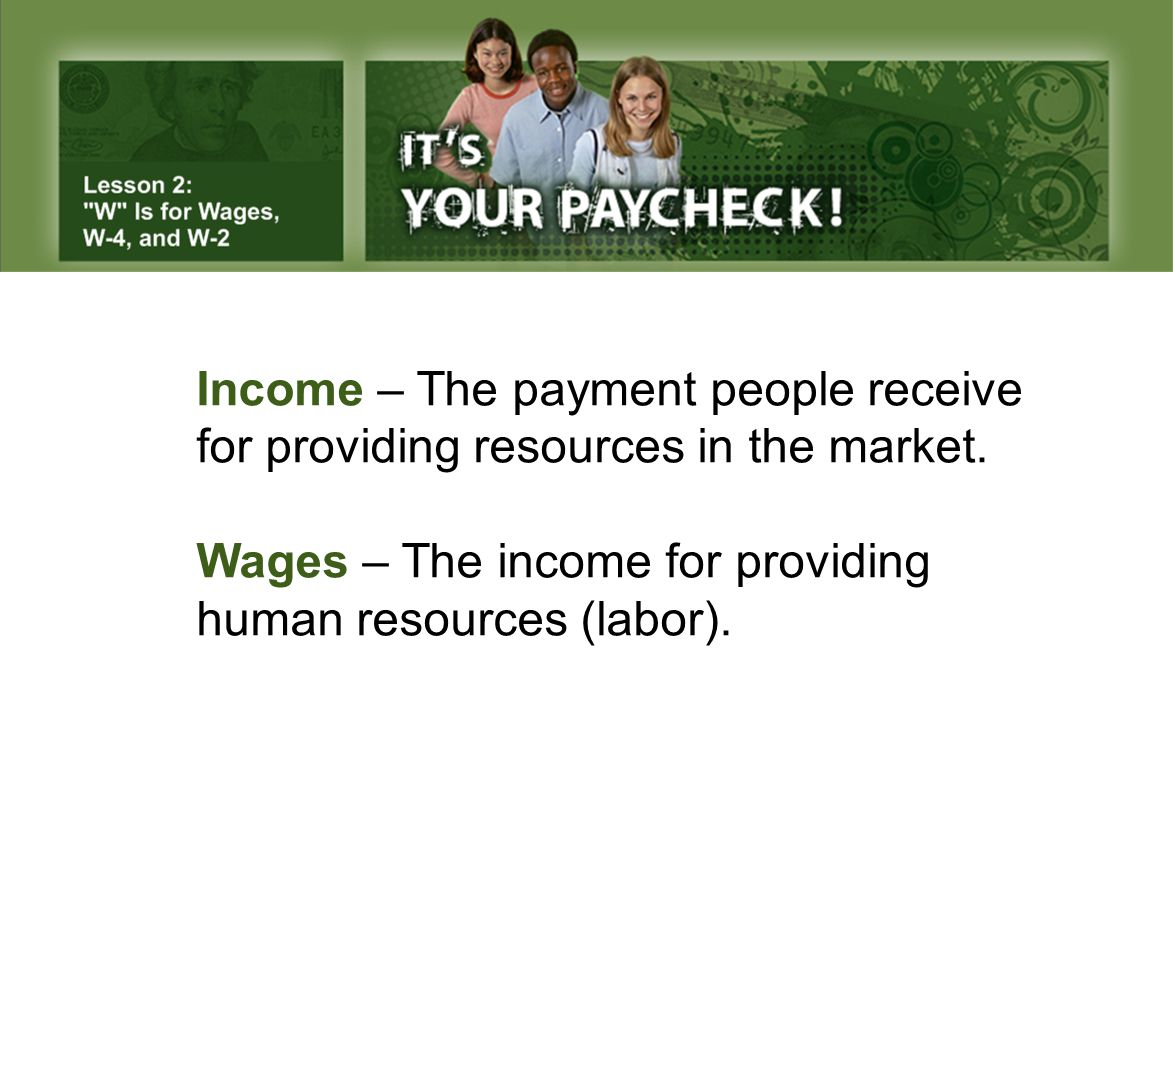 Income – The payment people receive for providing resources in the market.